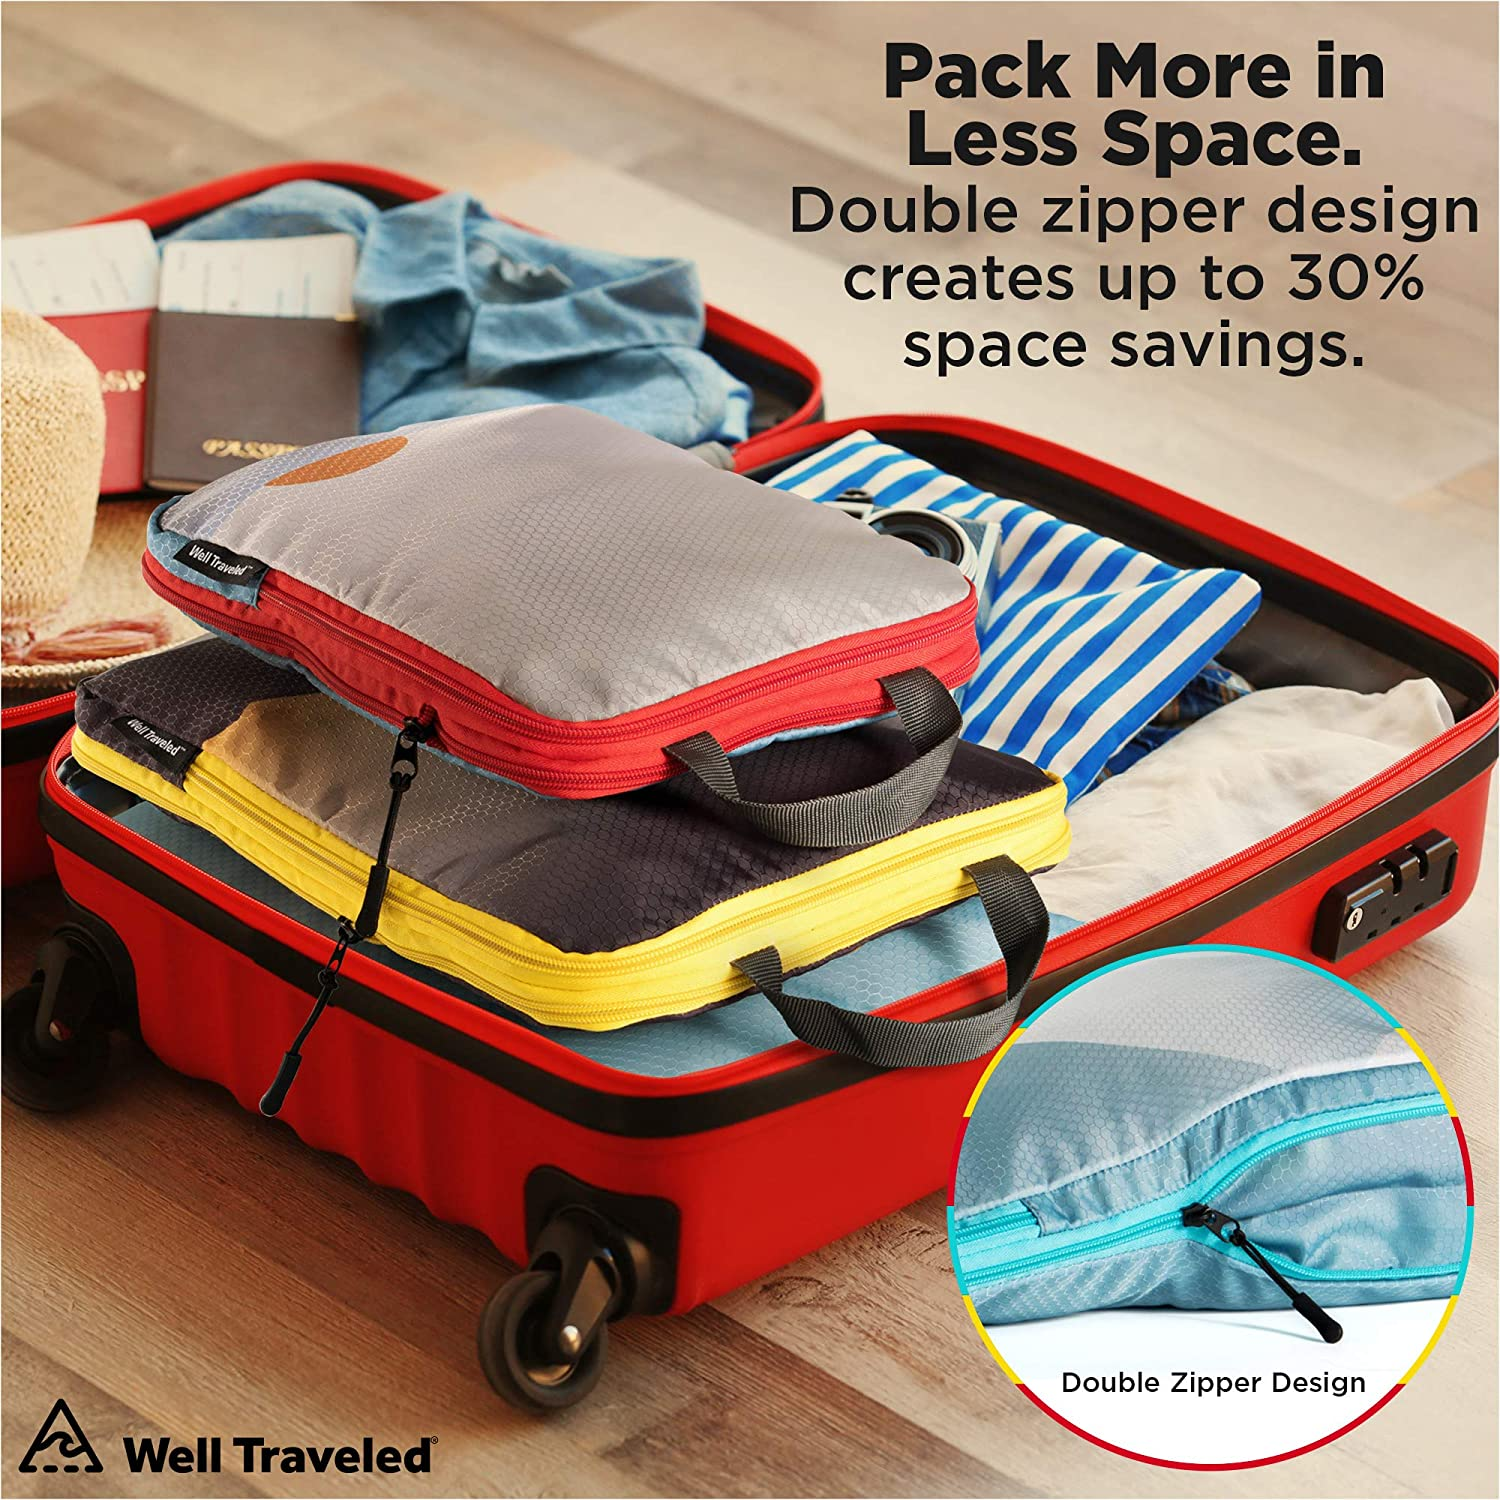 Suitcase Organizer /& Backpack Organizer with Space Saver Travel Bags for Packing Clothes 3pc Compression Packing Cubes for Travel Travel Gear /& Travel Accessories Luggage Organizer Well Traveled